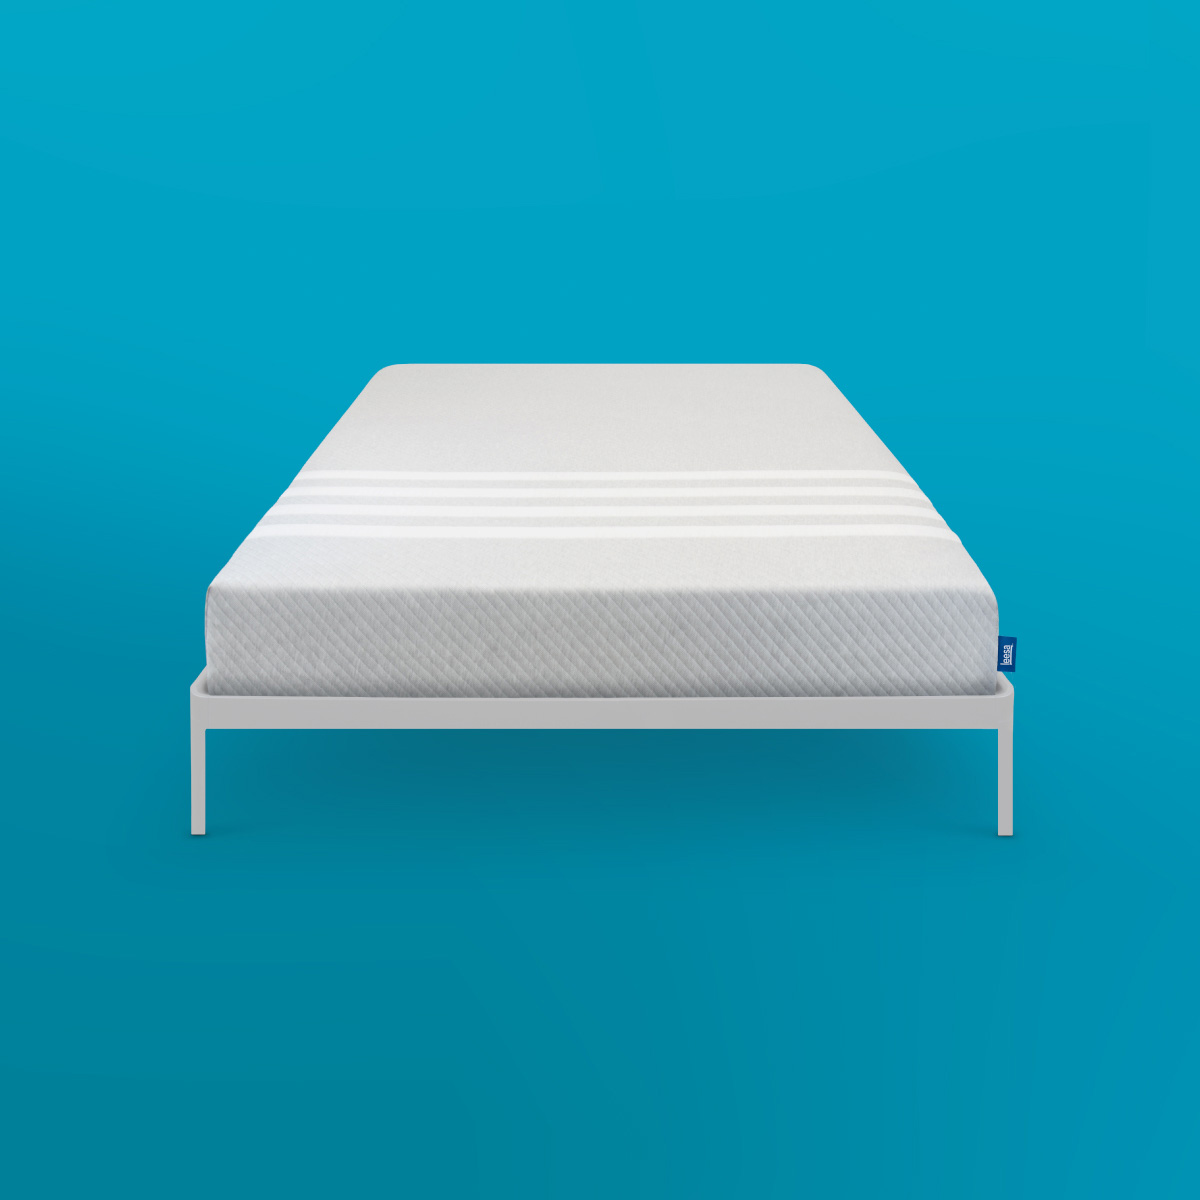 https://leesacdn.blob.core.windows.net/website/_shared/img/meta-tags/og-mattress-white-frame-on-blue.jpg